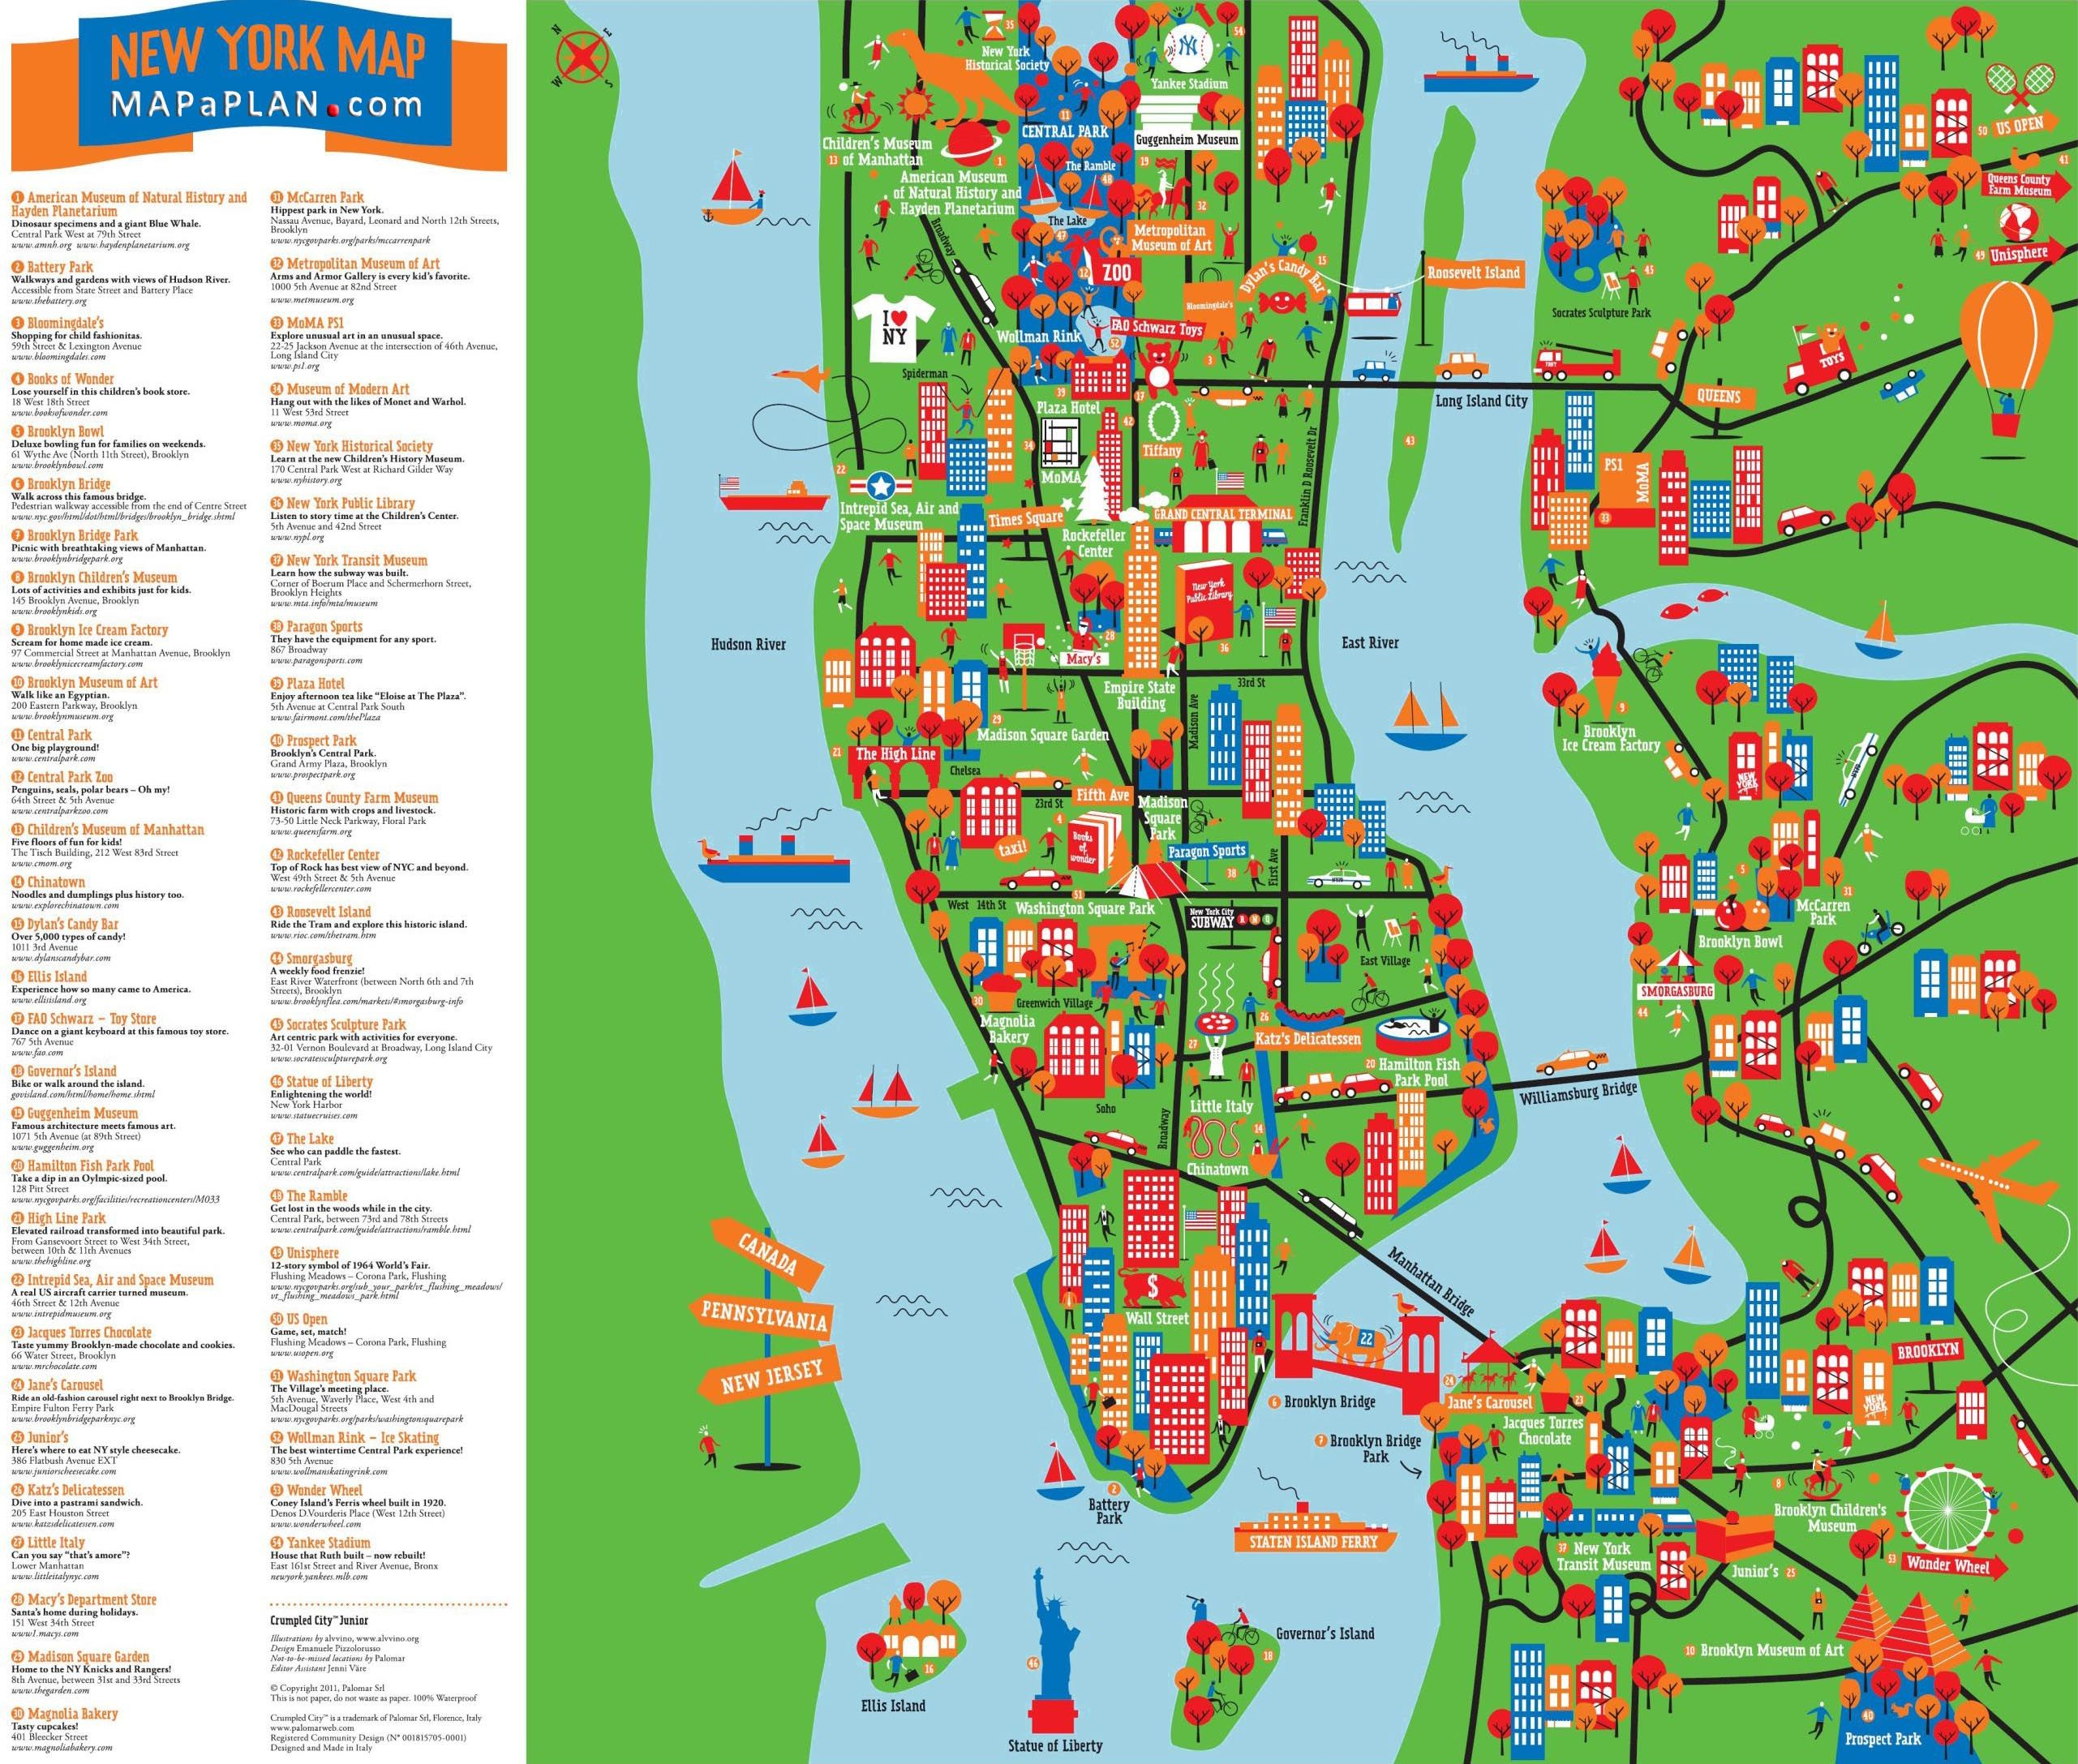 greatthingstodowithkidschildreninteractivecolorfulnew – Panama City Tourist Attractions Map